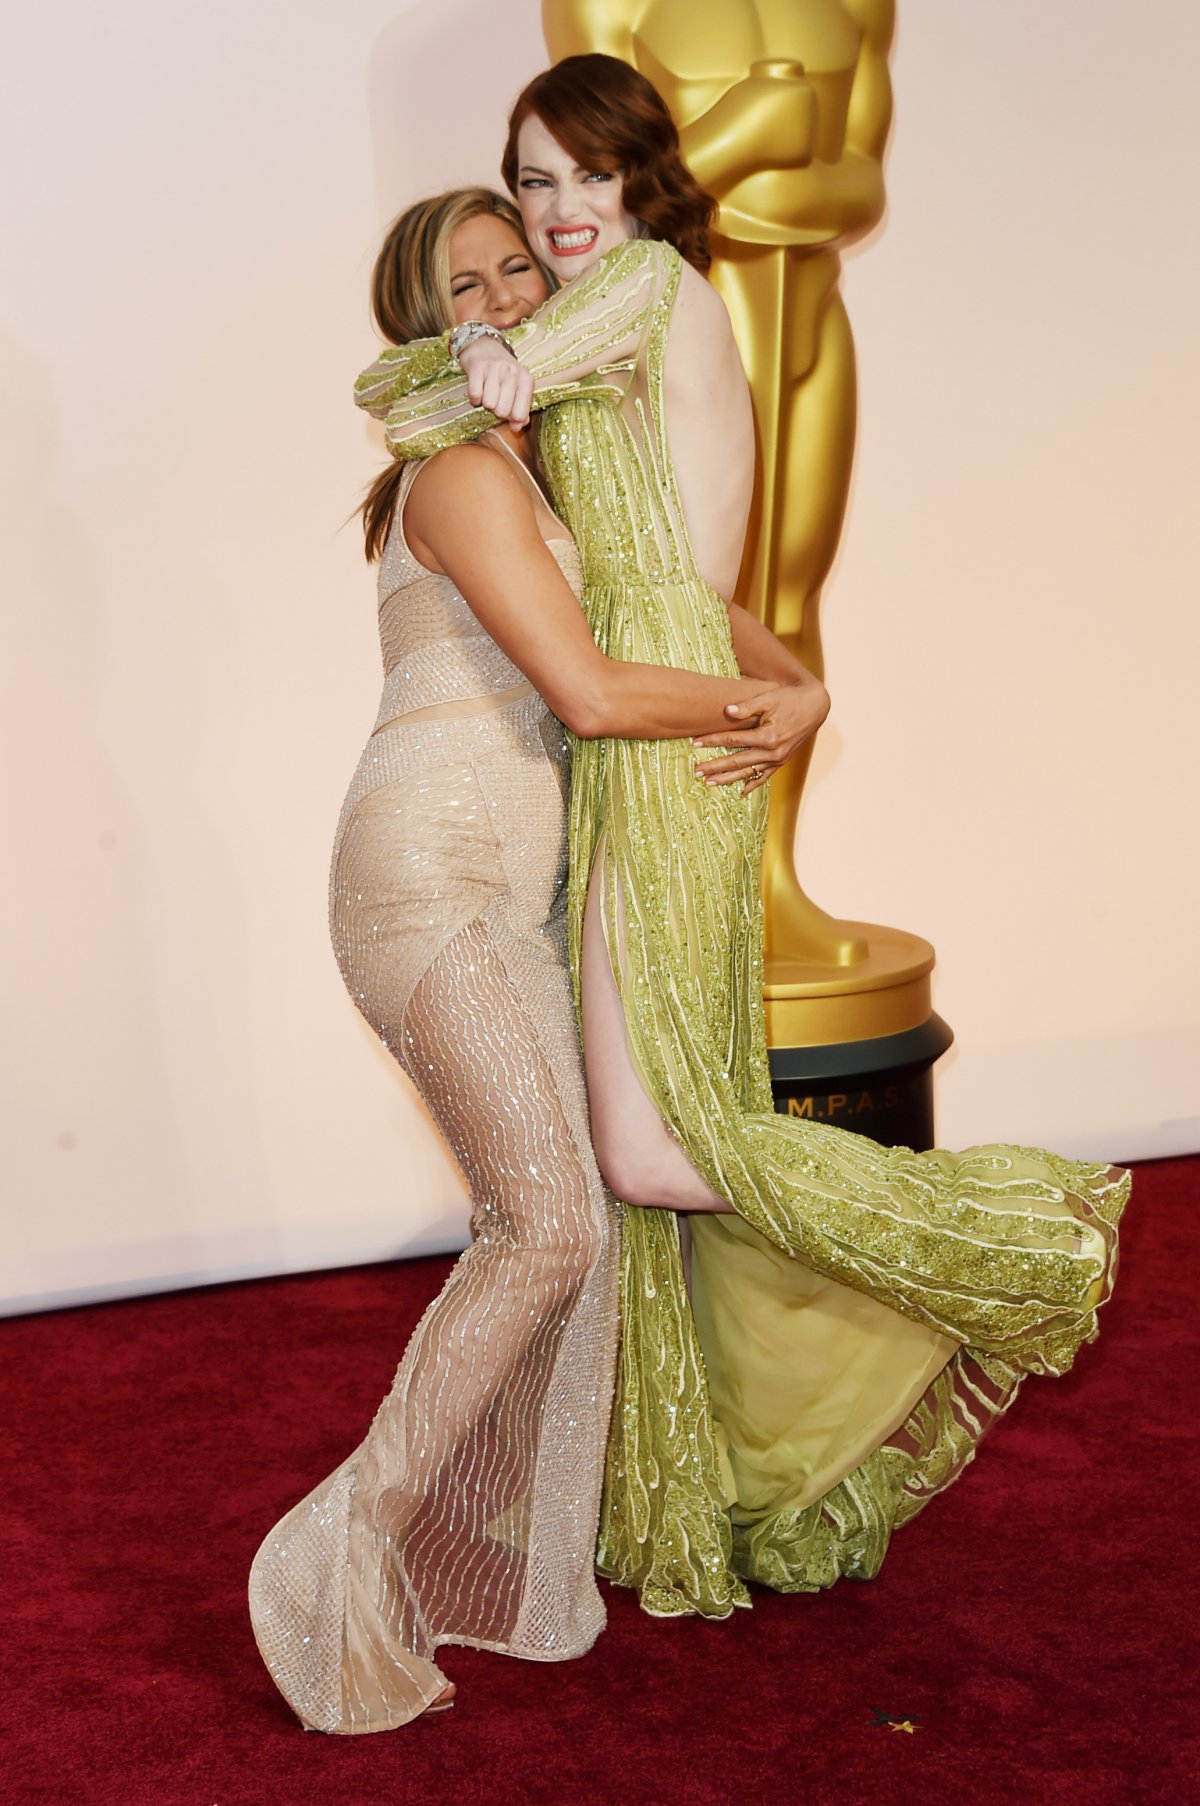 emma-stone-was-really-excited-to-see-fellow-oscar-nominee-jennifer-aniston-on-the-red-carpet